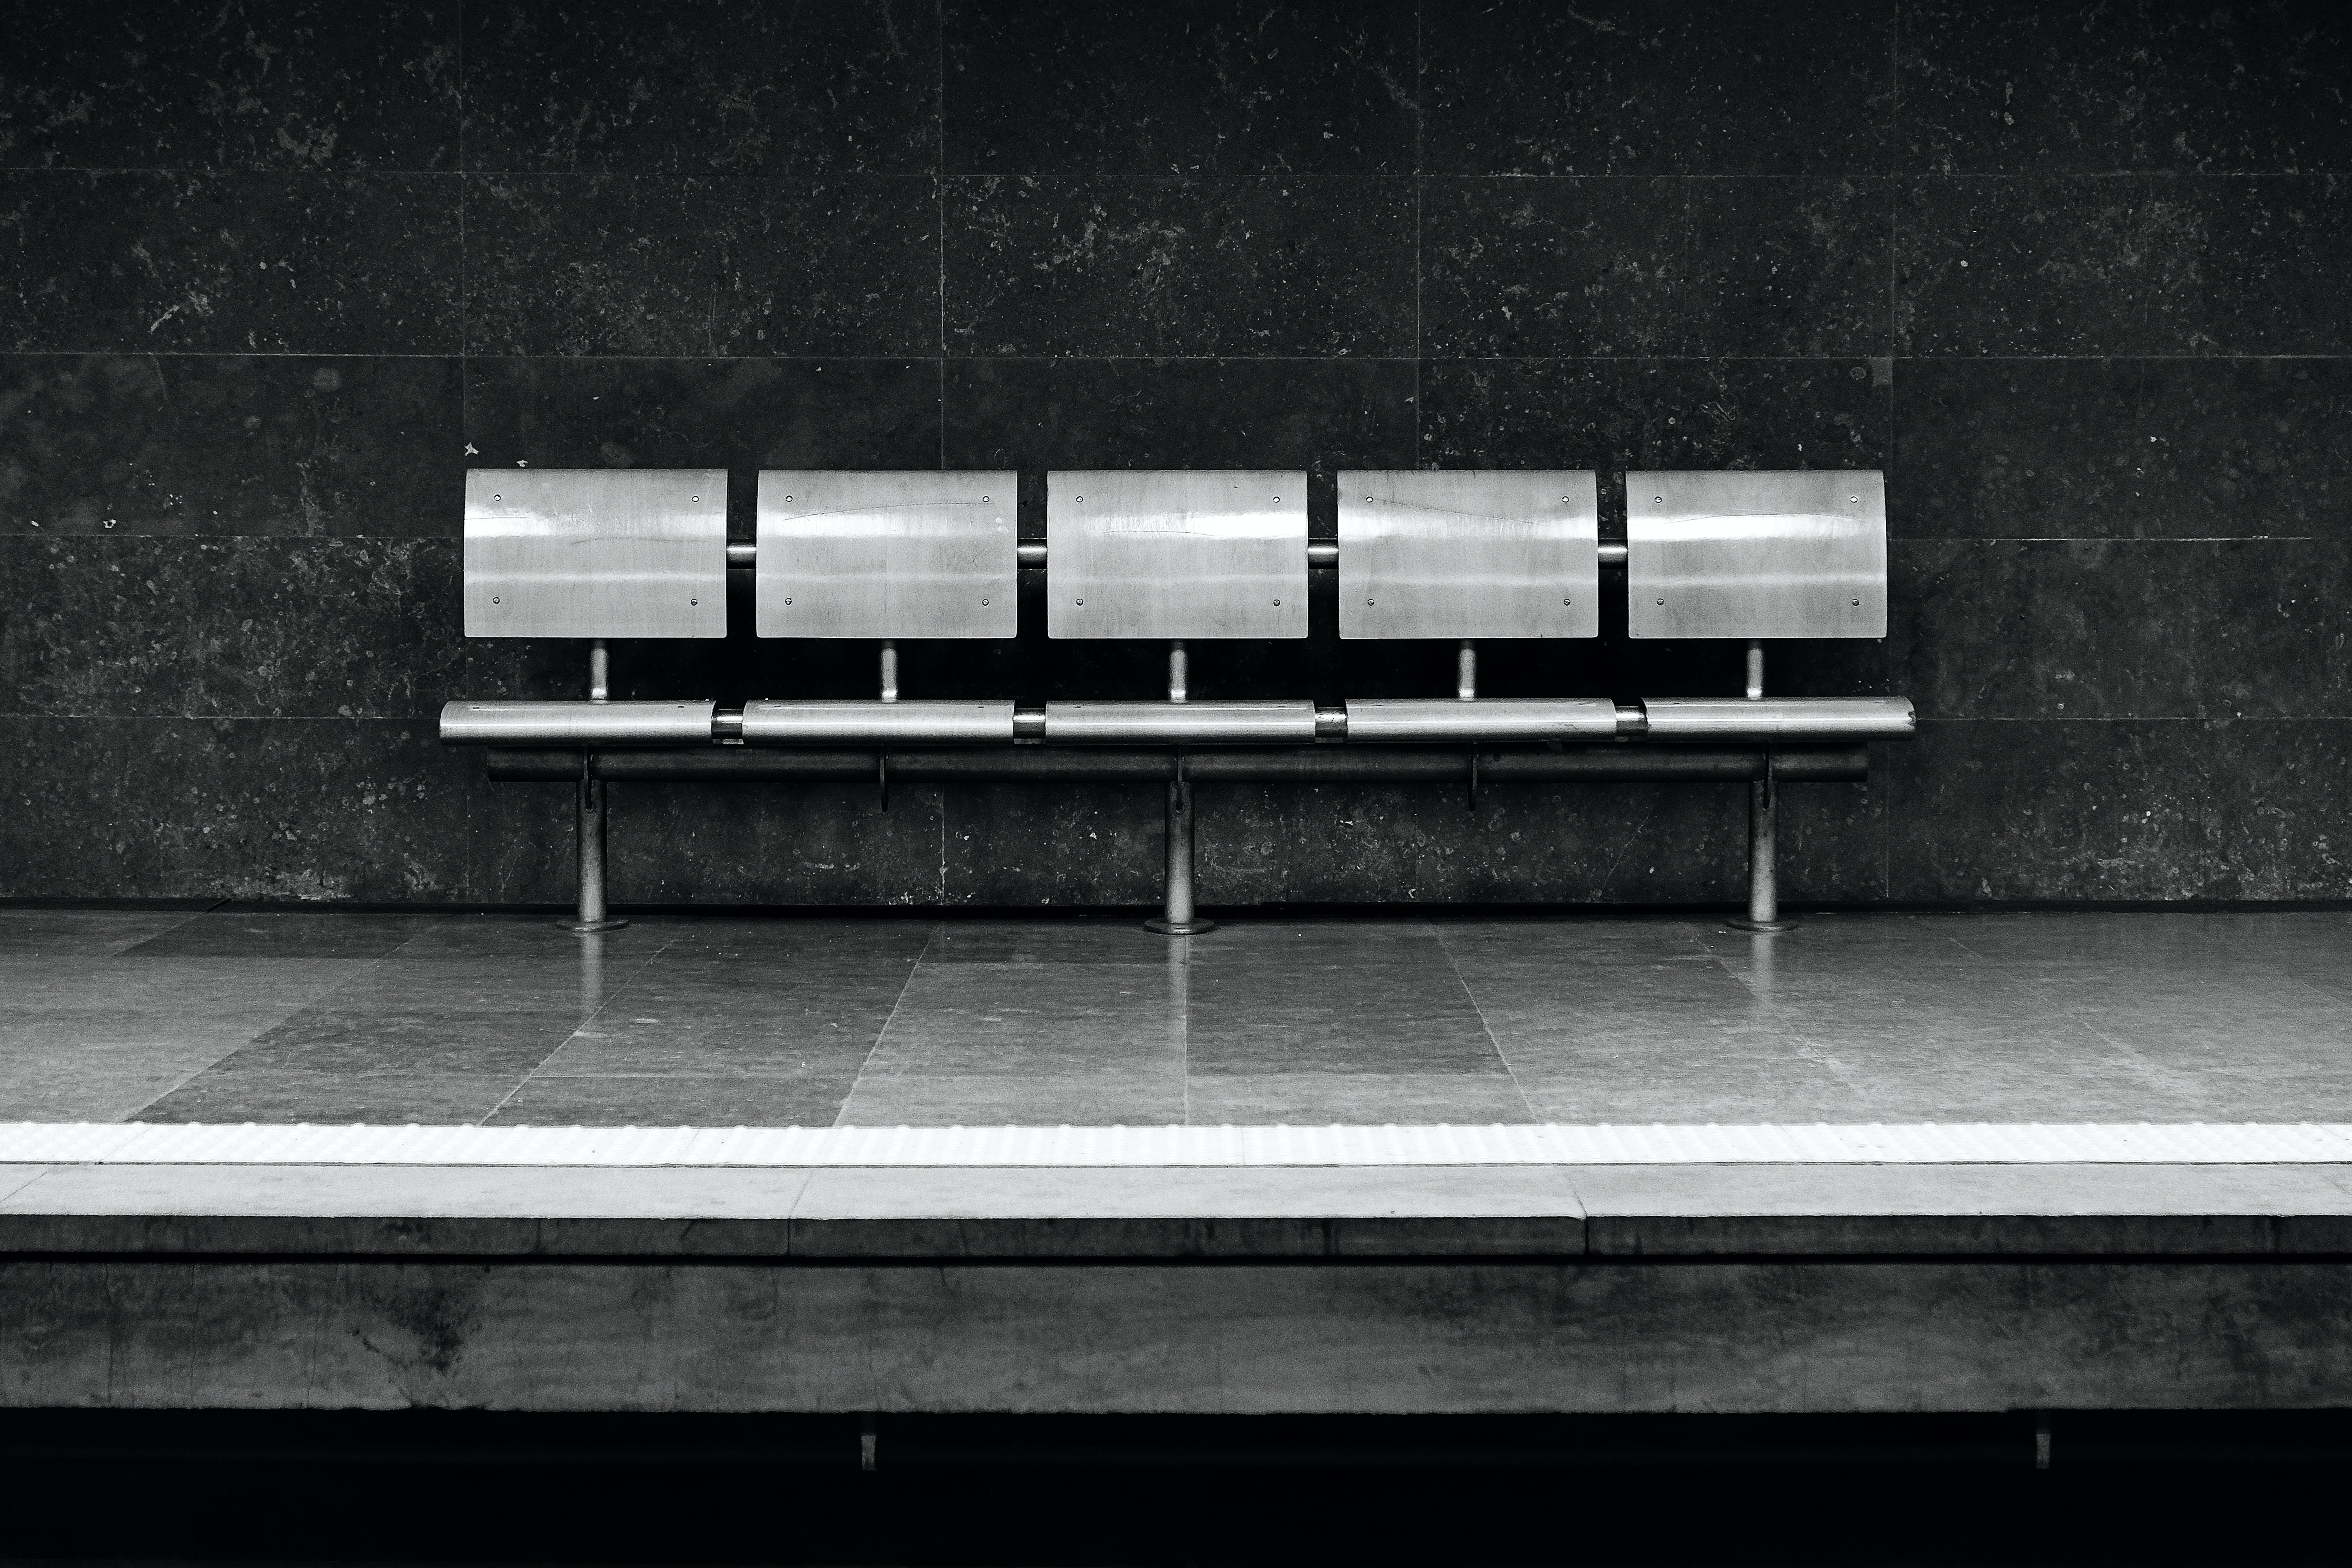 A black-and-white shot of a glossy metal bench at a subway platform